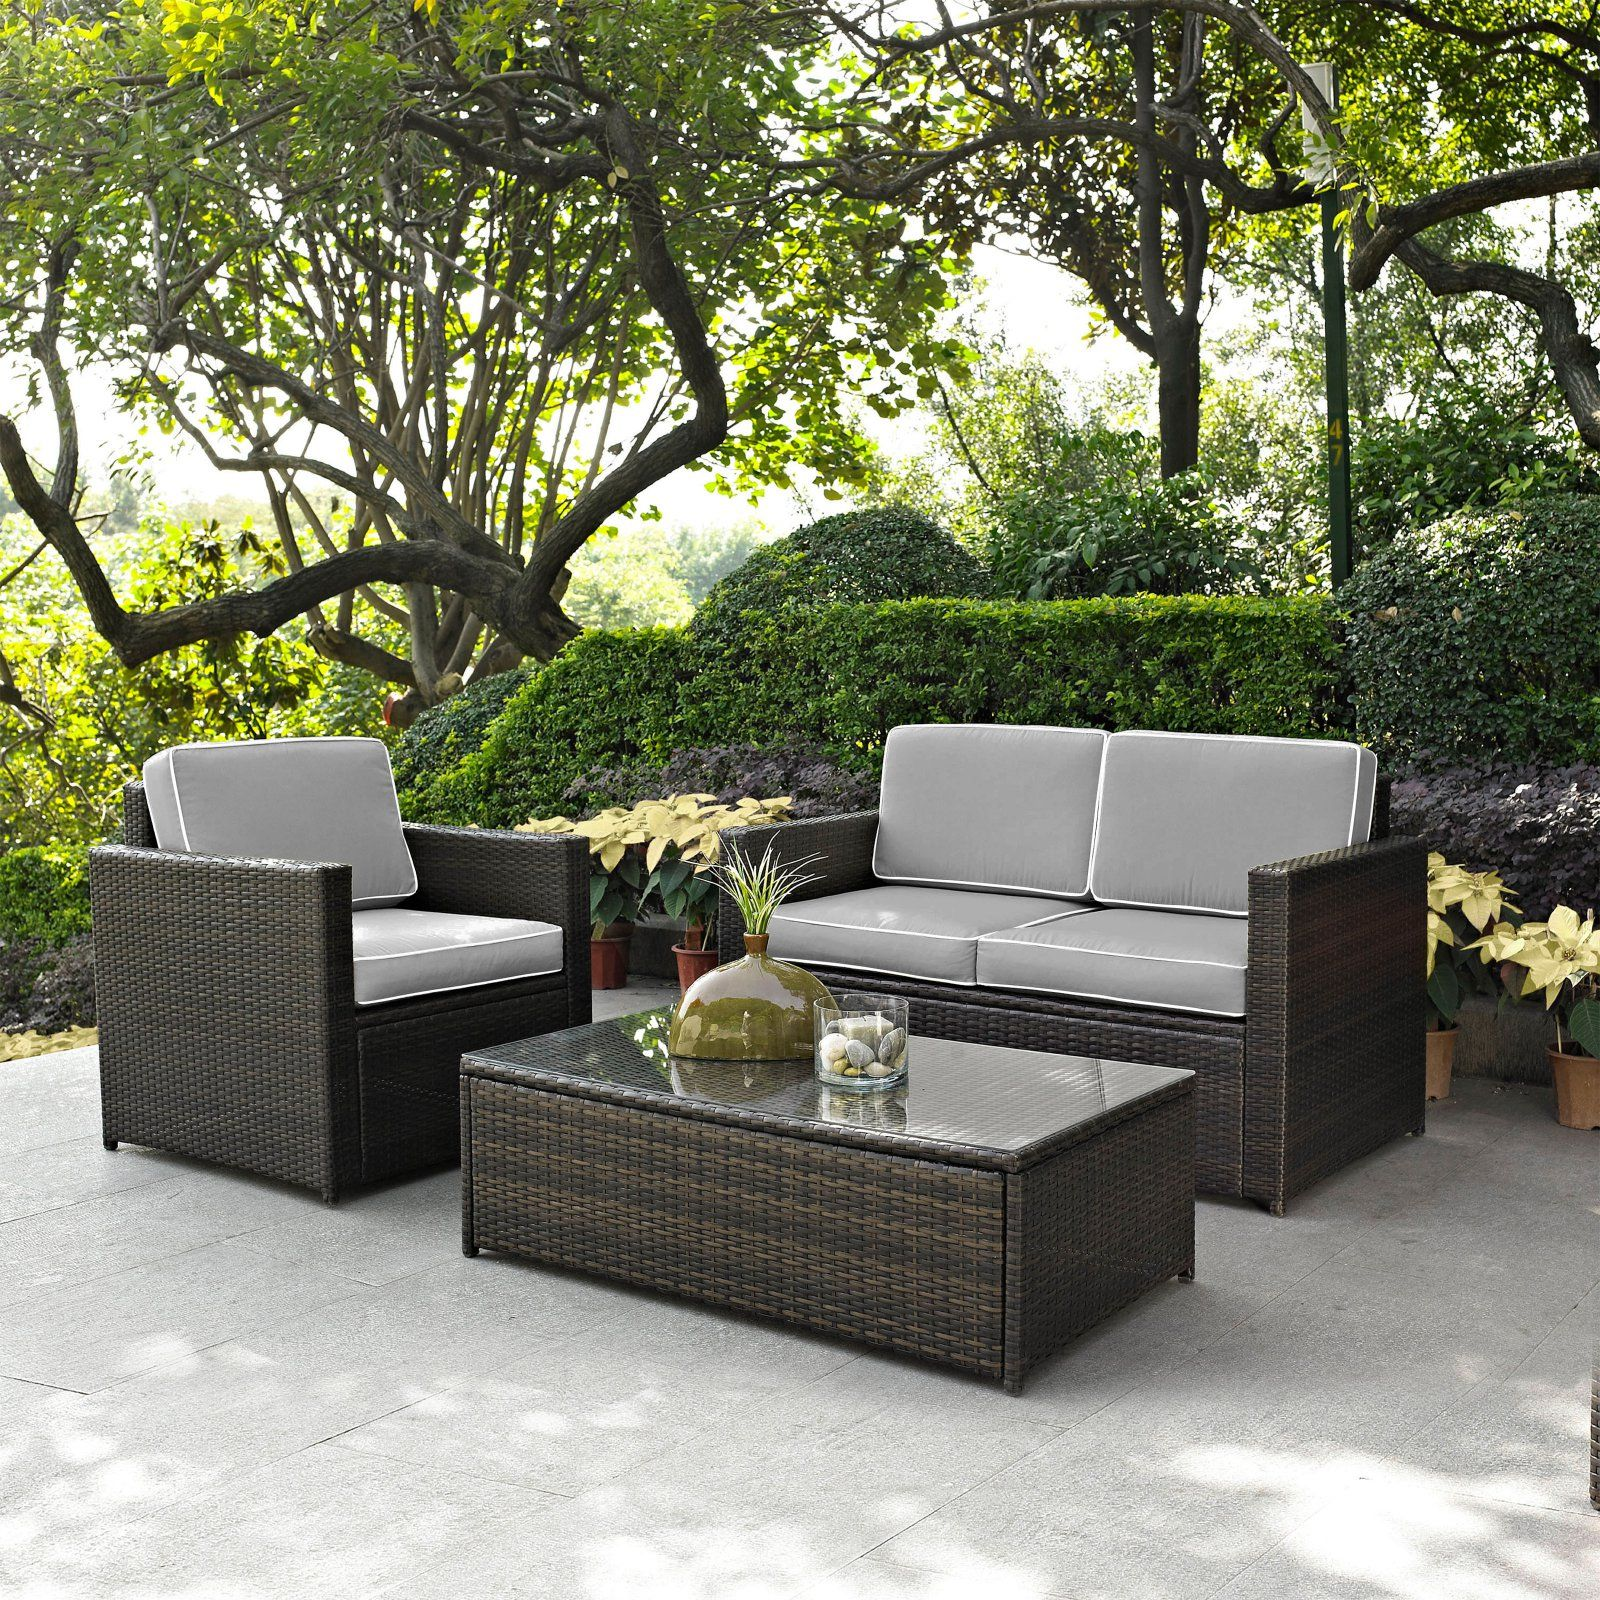 Enjoyable Crosley Furniture Palm Harbor All Weather Wicker 3 Piece Download Free Architecture Designs Embacsunscenecom